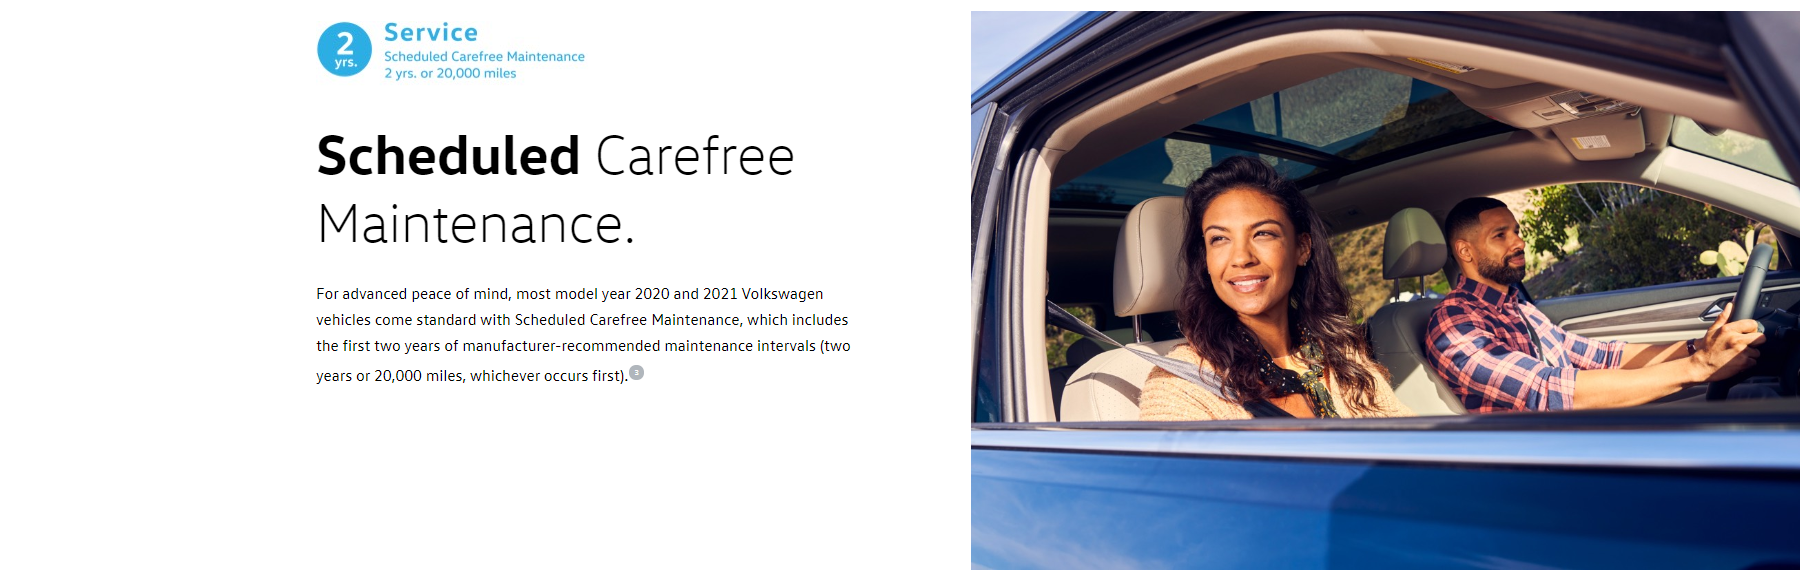 Scheduled Carefree Maintenance. For advanced peace of mind, most model year 2020 and 2021 Volkswagen vehicles come standard with Scheduled Carefree Maintenance, which includes the first two years of manufacturer-recommended maintenance intervals (two years or 20,000 miles, whichever occurs first).